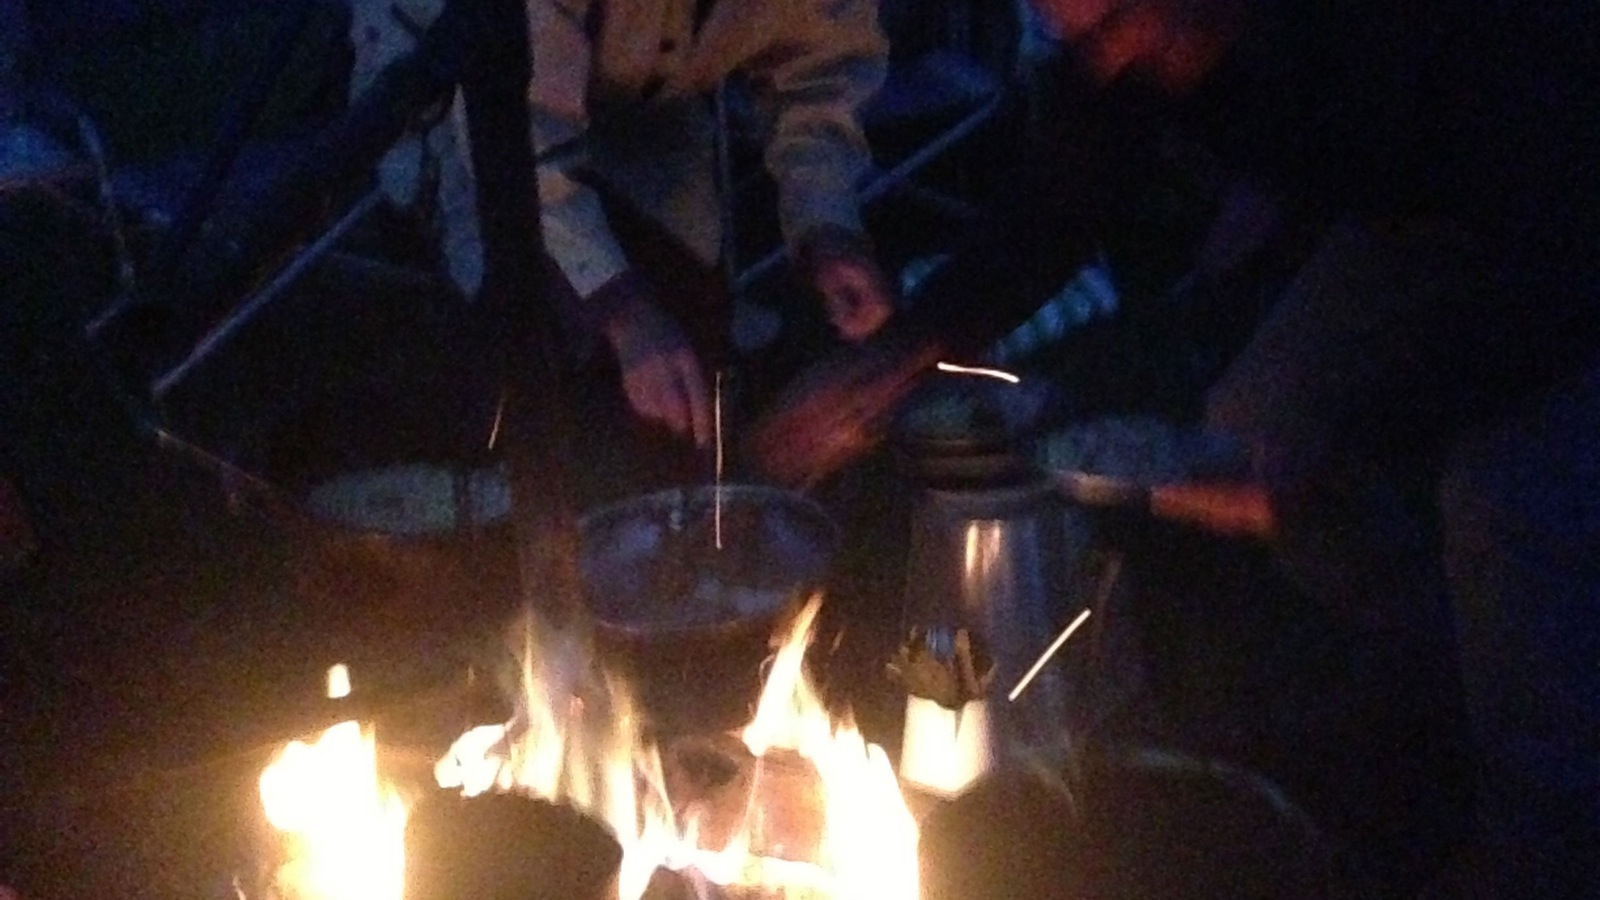 laughter around the campfire